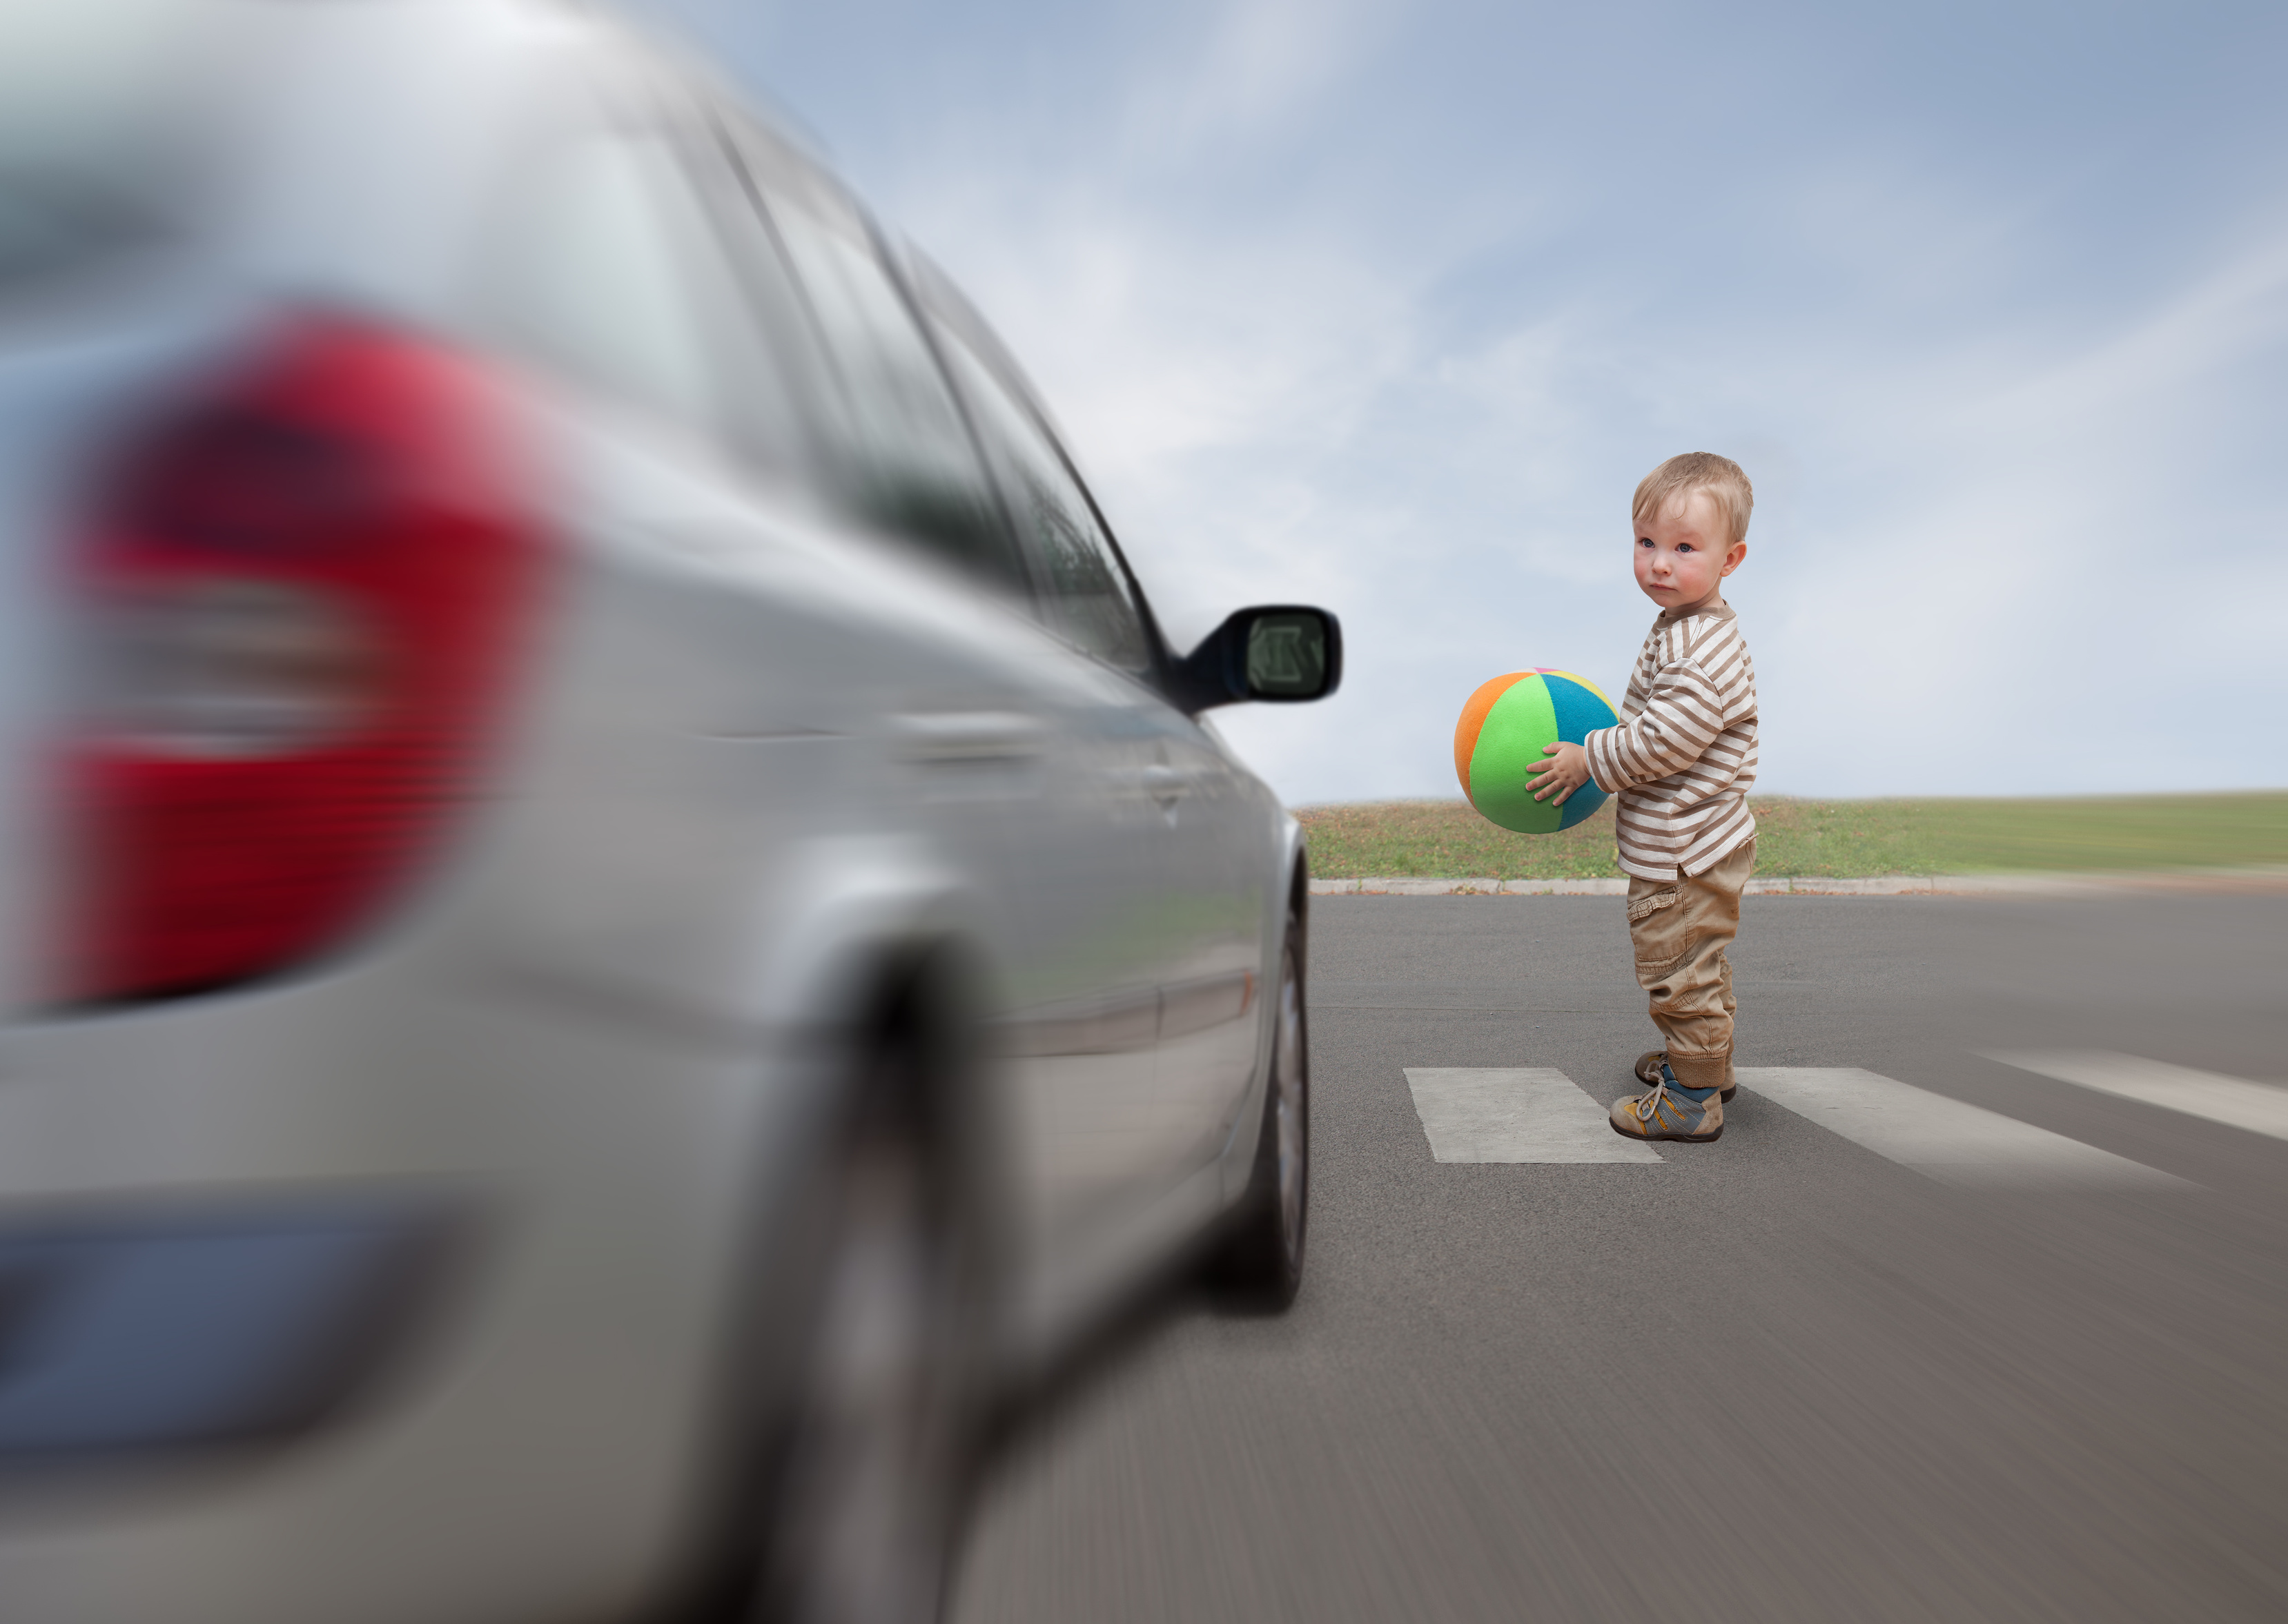 baby with ball tries to cross the road